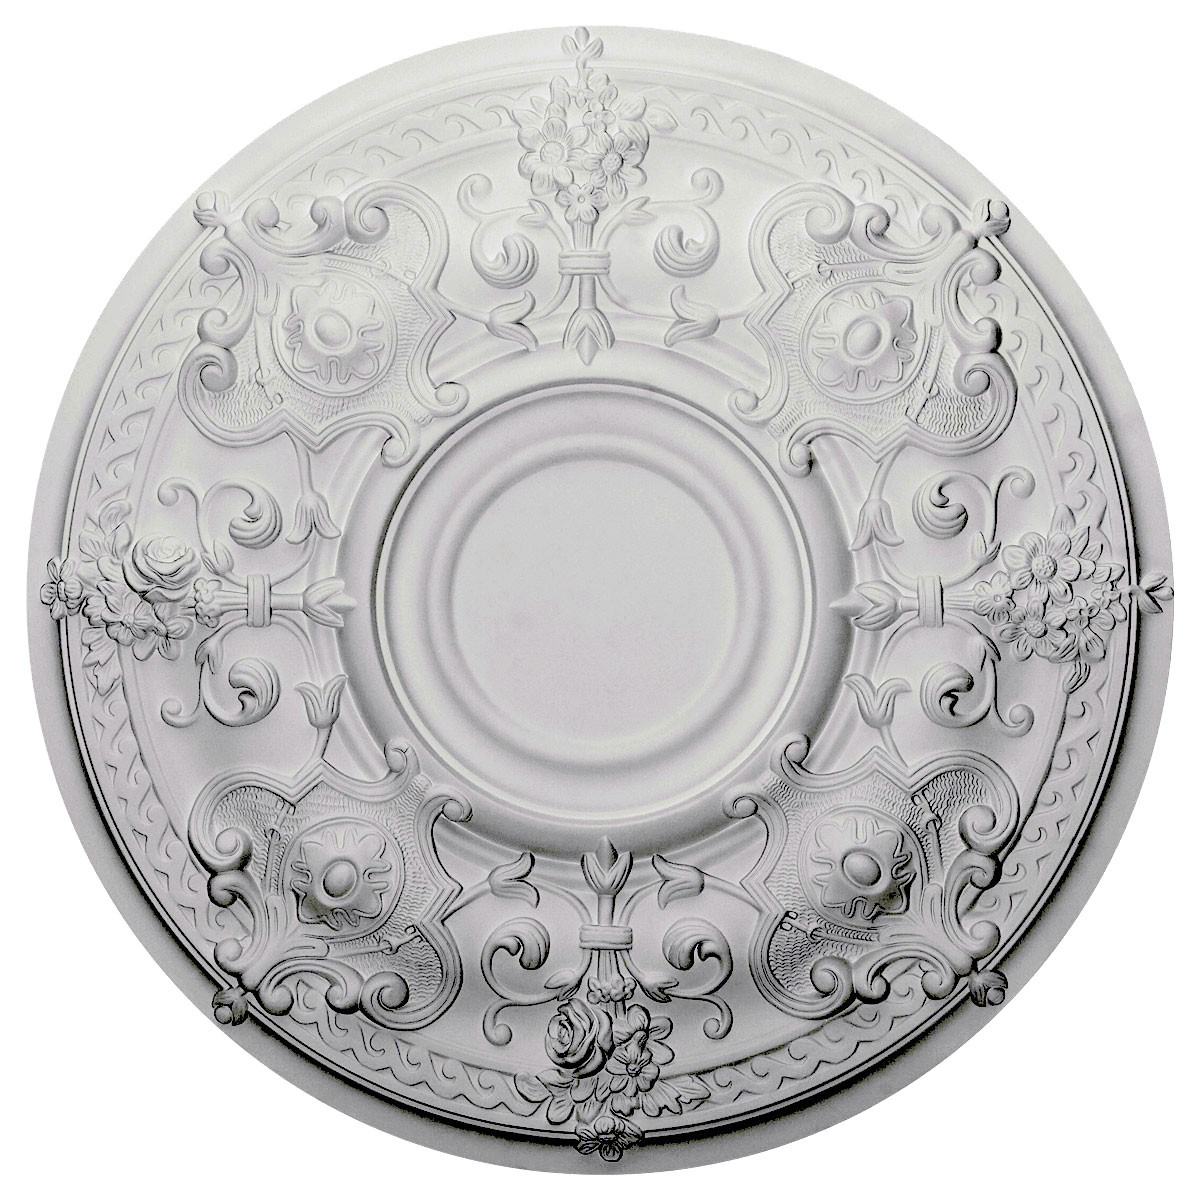 """EM-CM28OS - 28 1/8""""OD x 1 3/4""""P Oslo Ceiling Medallion (Fits Canopies up to 10 1/2"""")"""